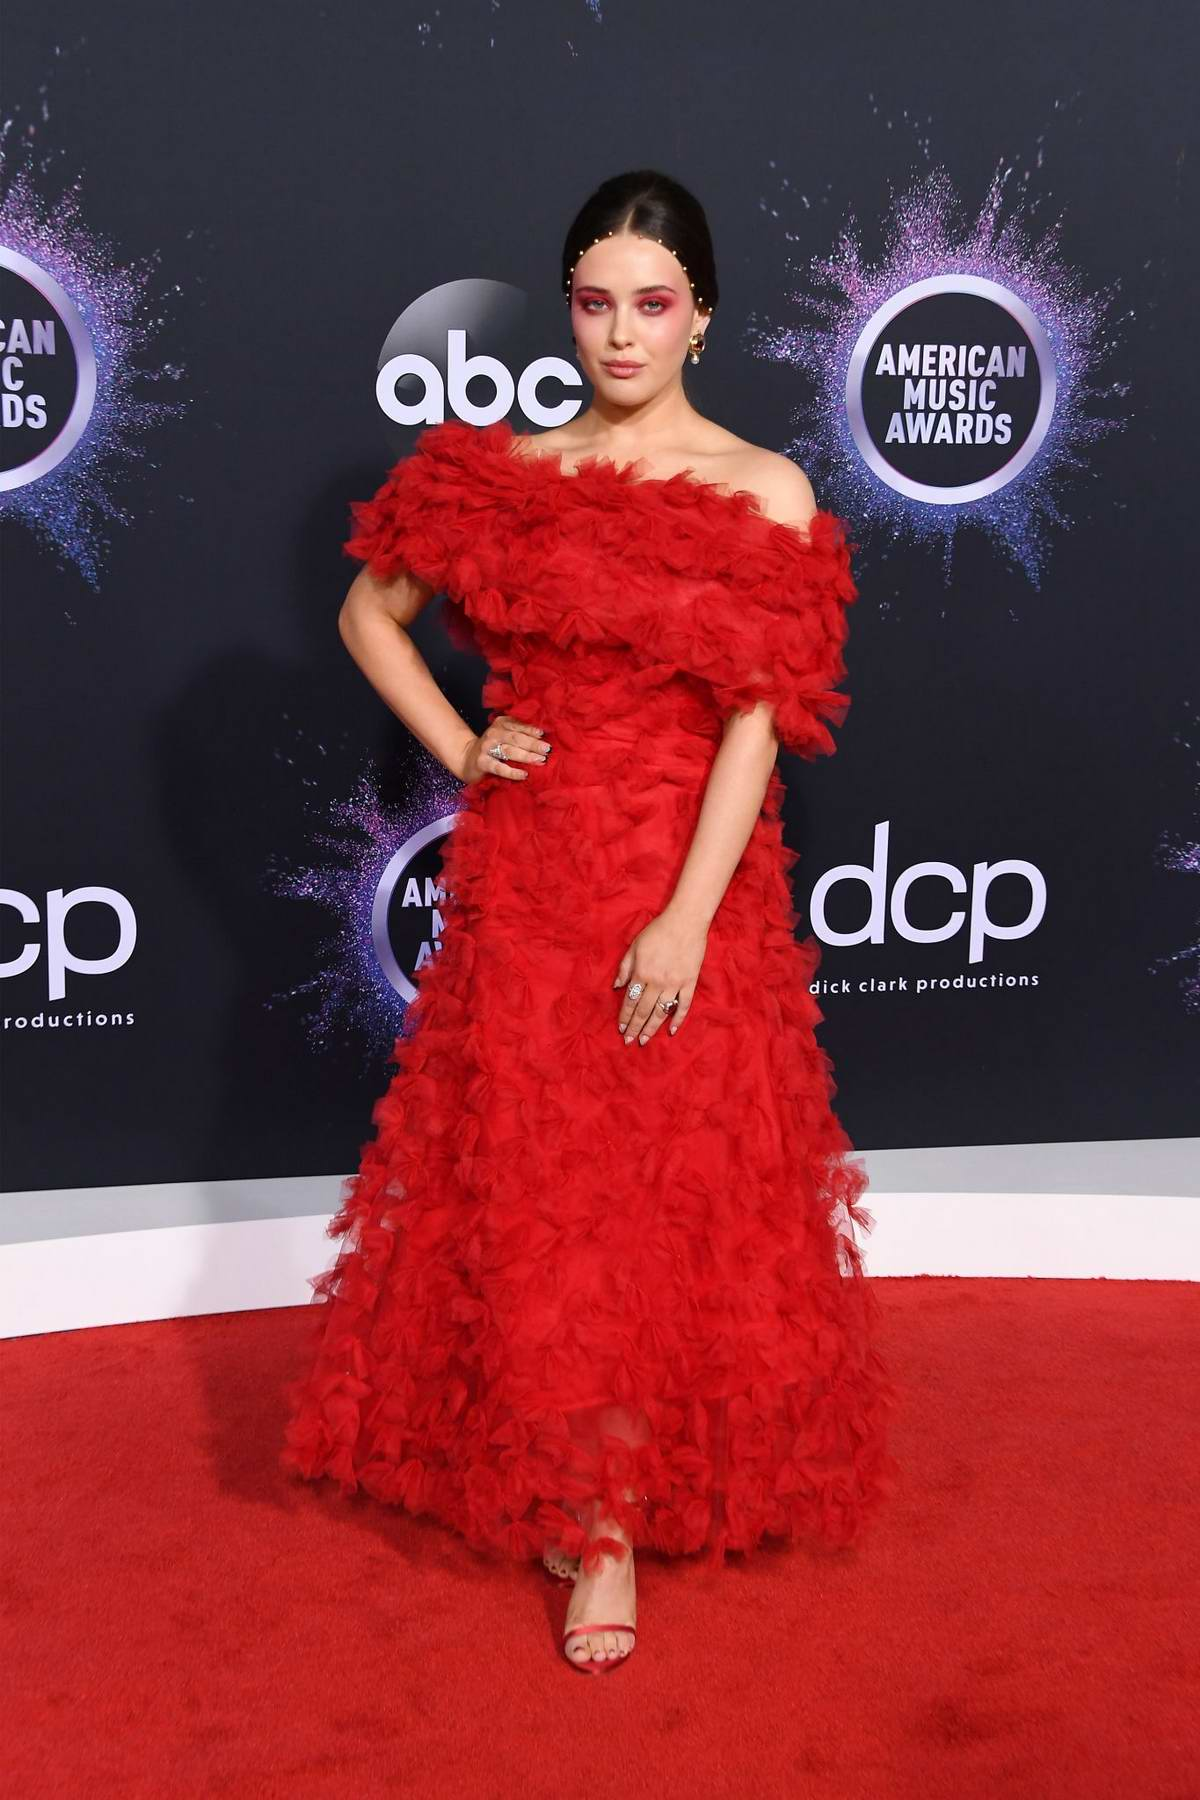 Katherine Langford attends the 2019 American Music Awards at Microsoft Theater in Los Angeles